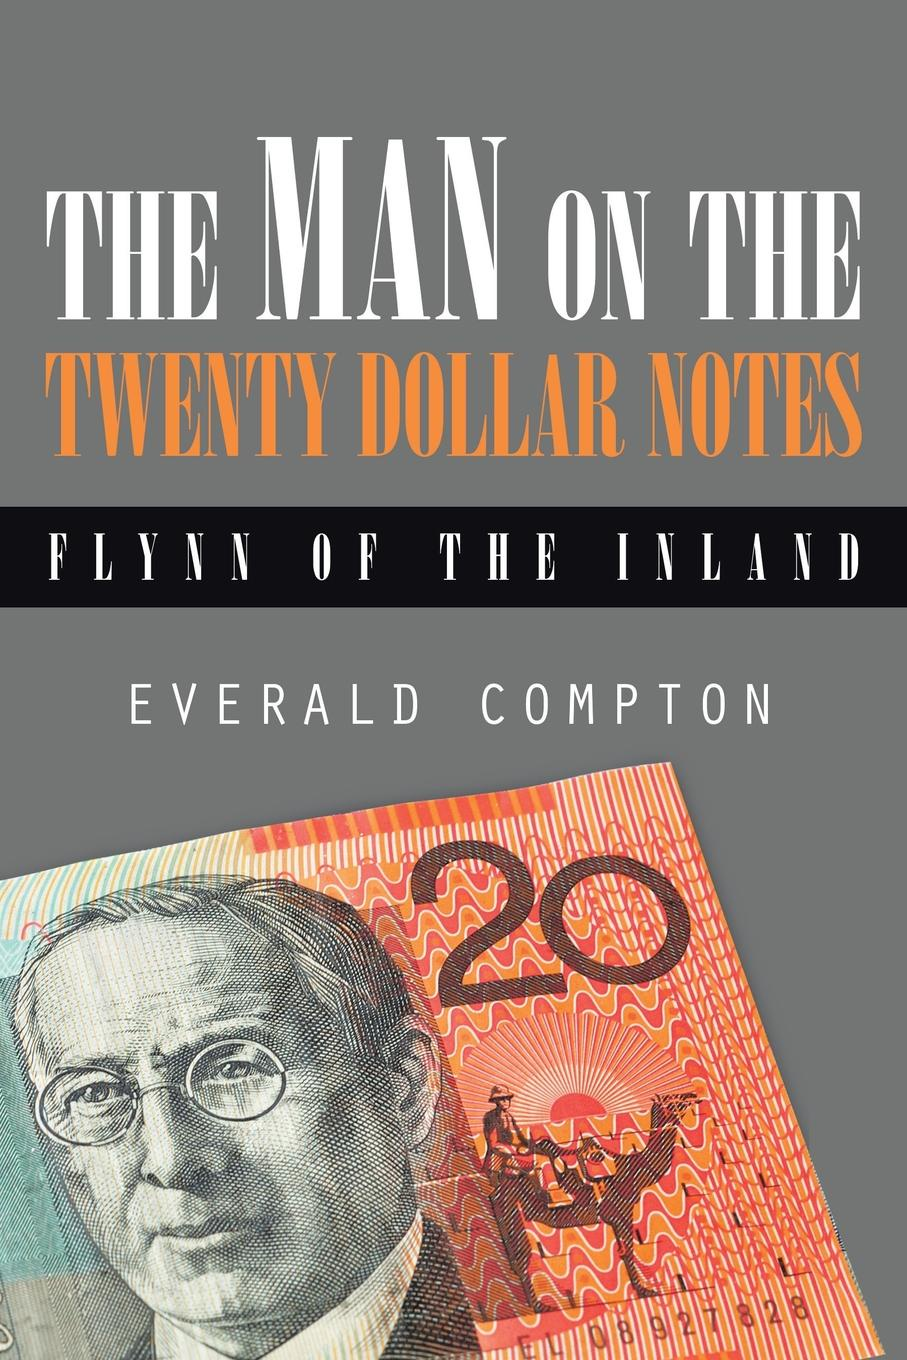 Everald Compton The Man on the Twenty Dollar Notes. Flynn of the Inland notes on the cuff